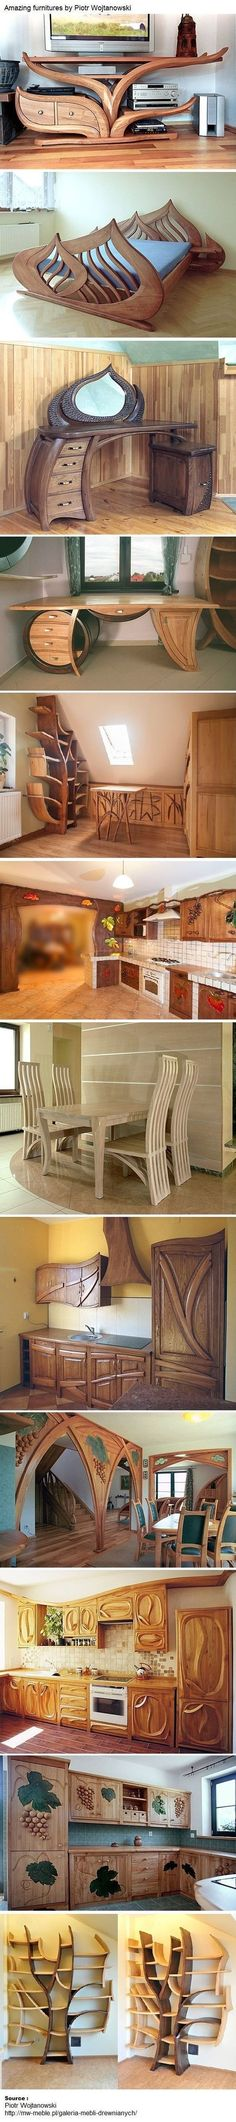 Wood Profits - This might be the Hobbits furniture collection. Amazing furnitures by Piotr Wojtanowski - Discover How You Can Start A Woodworking Business From Home Easily in 7 Days With NO Capital Needed! Funky Furniture, Unique Furniture, Wooden Furniture, Furniture Design, Repainting Furniture, Homemade Furniture, Recycled Furniture, Luxury Furniture, Woodworking Furniture